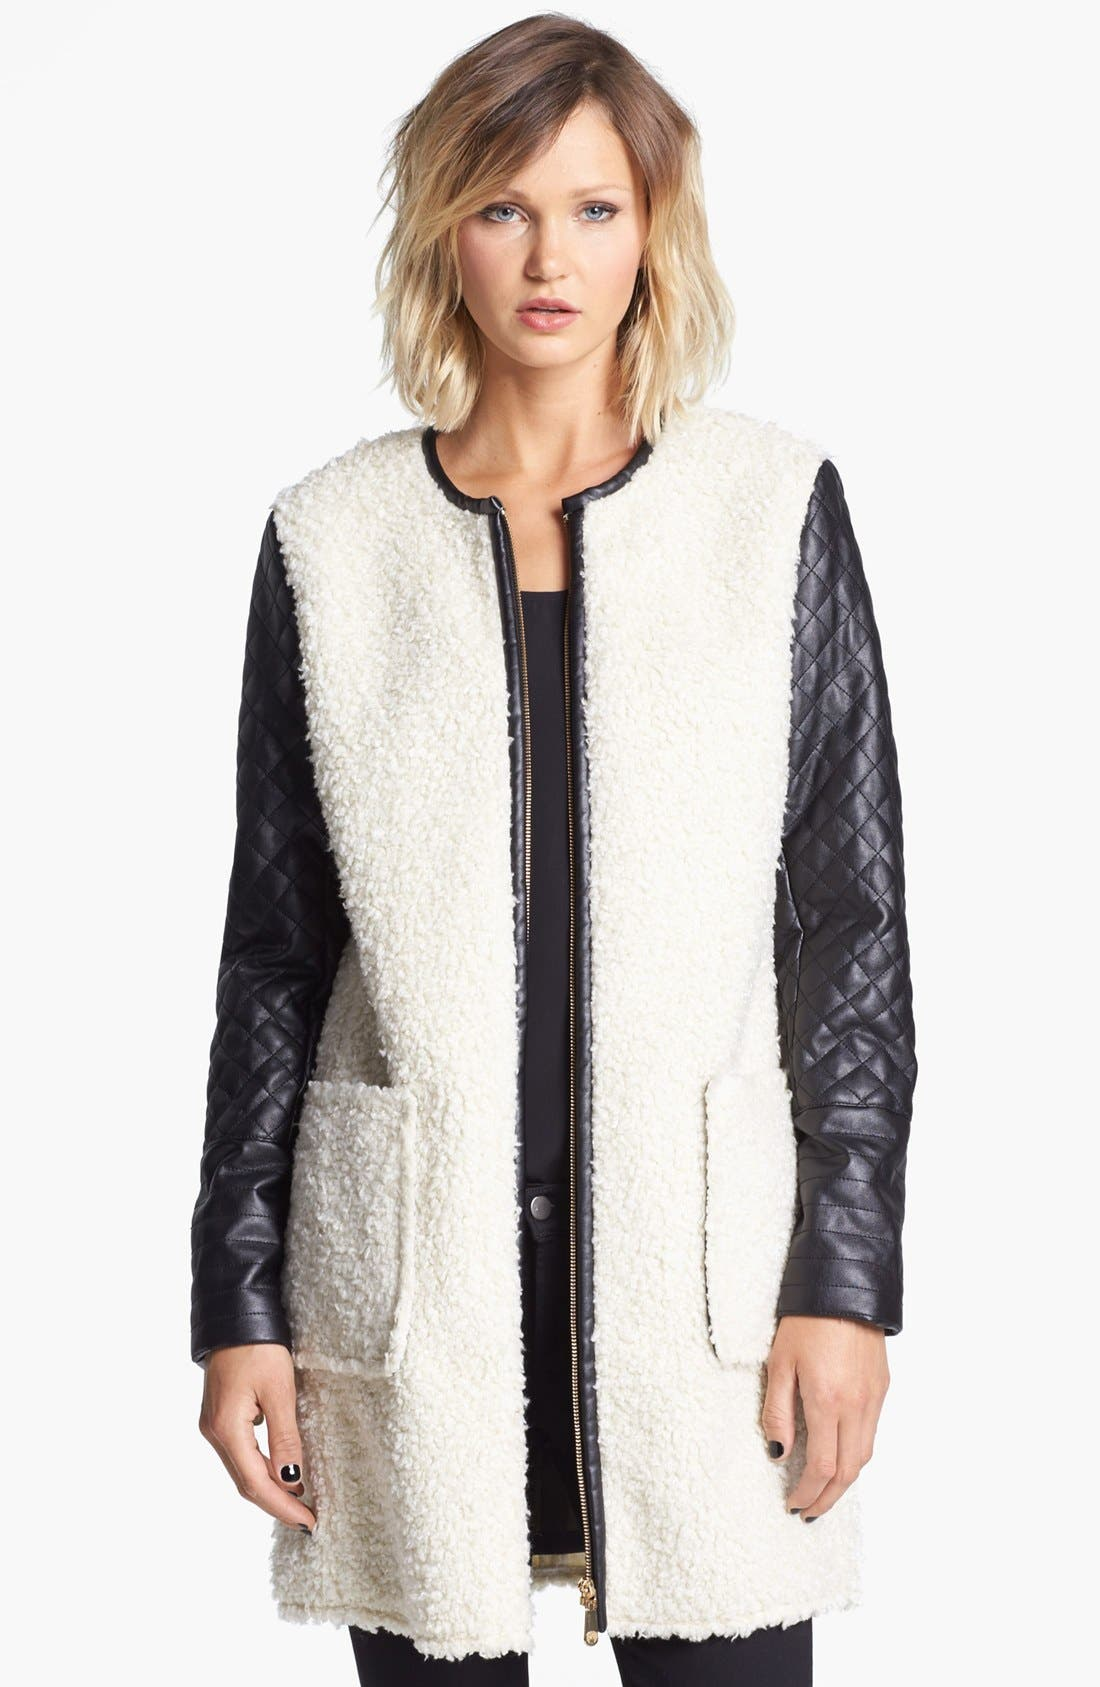 Alternate Image 1 Selected - Vince Camuto Faux Shearling & Faux Leather Coat